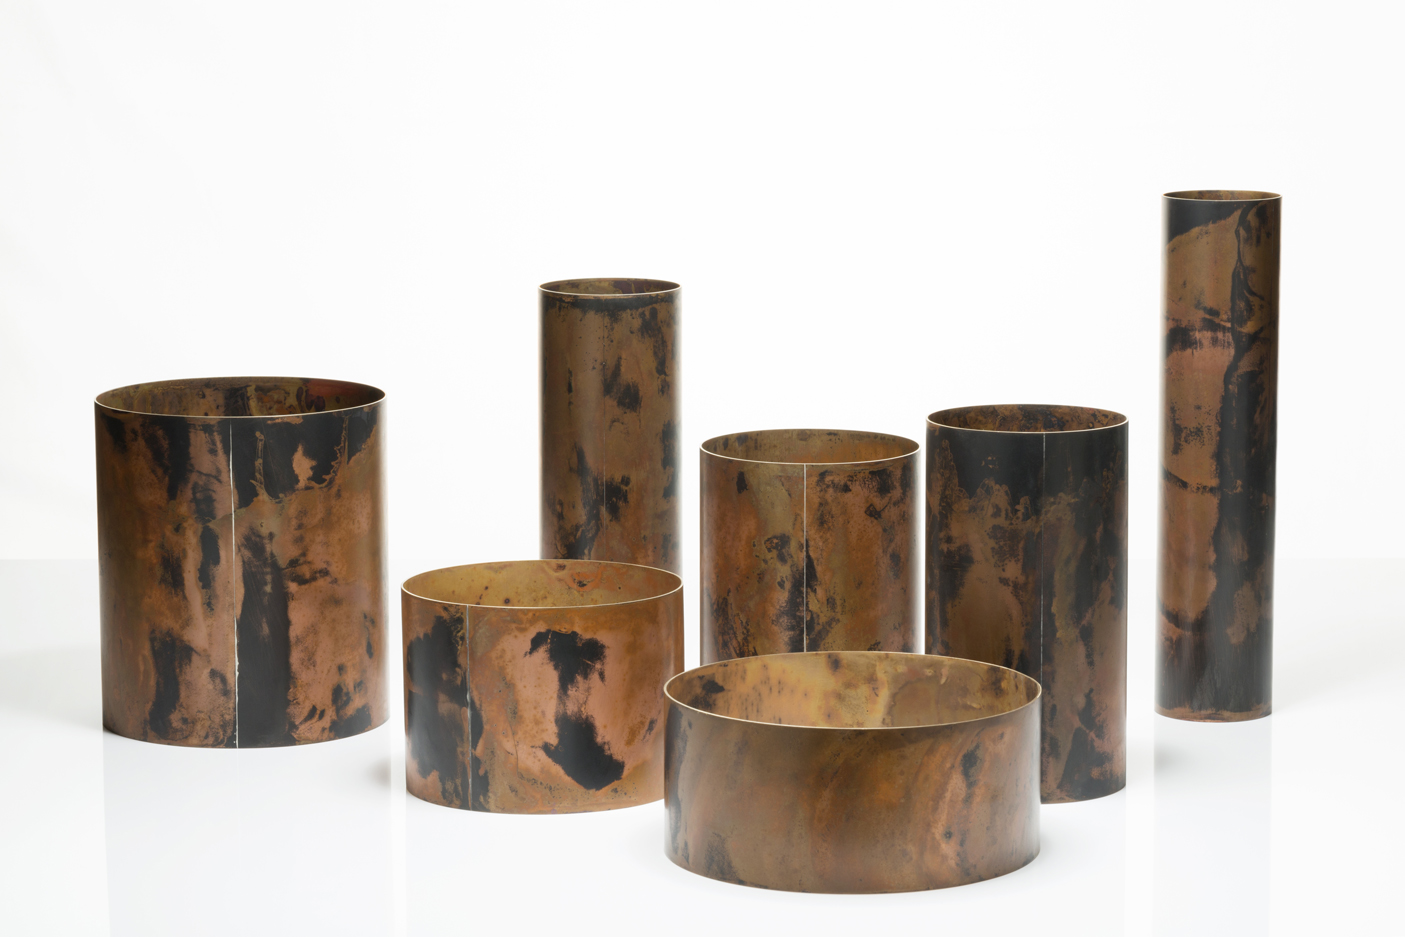 Juliette_Bigley_Cylinders_patinated_gilding_metal_2018_9.JPG